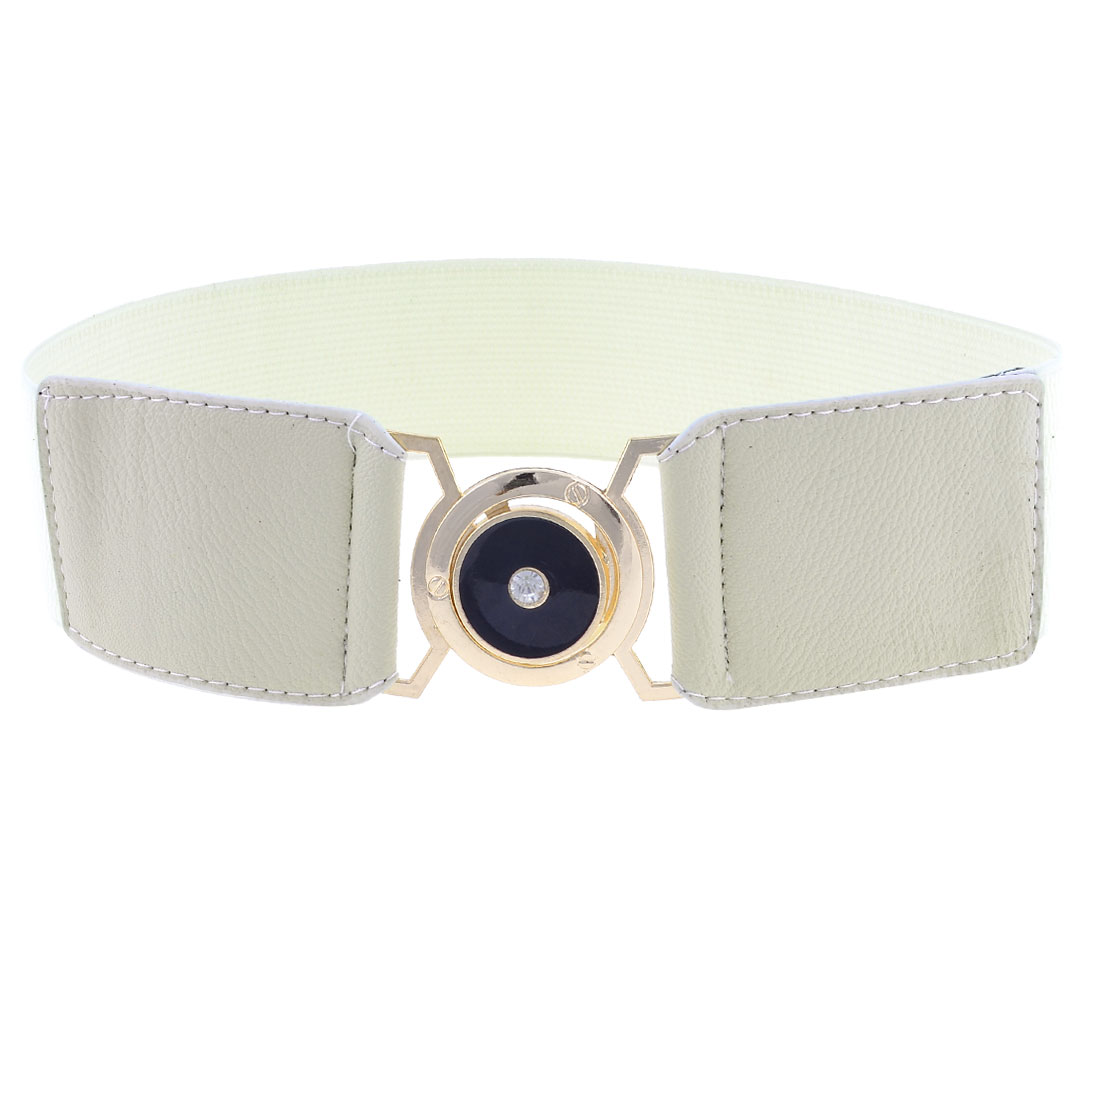 Off White Faux Leather Front Interlock Buckle Stretchy Belt Waistband for Ladies